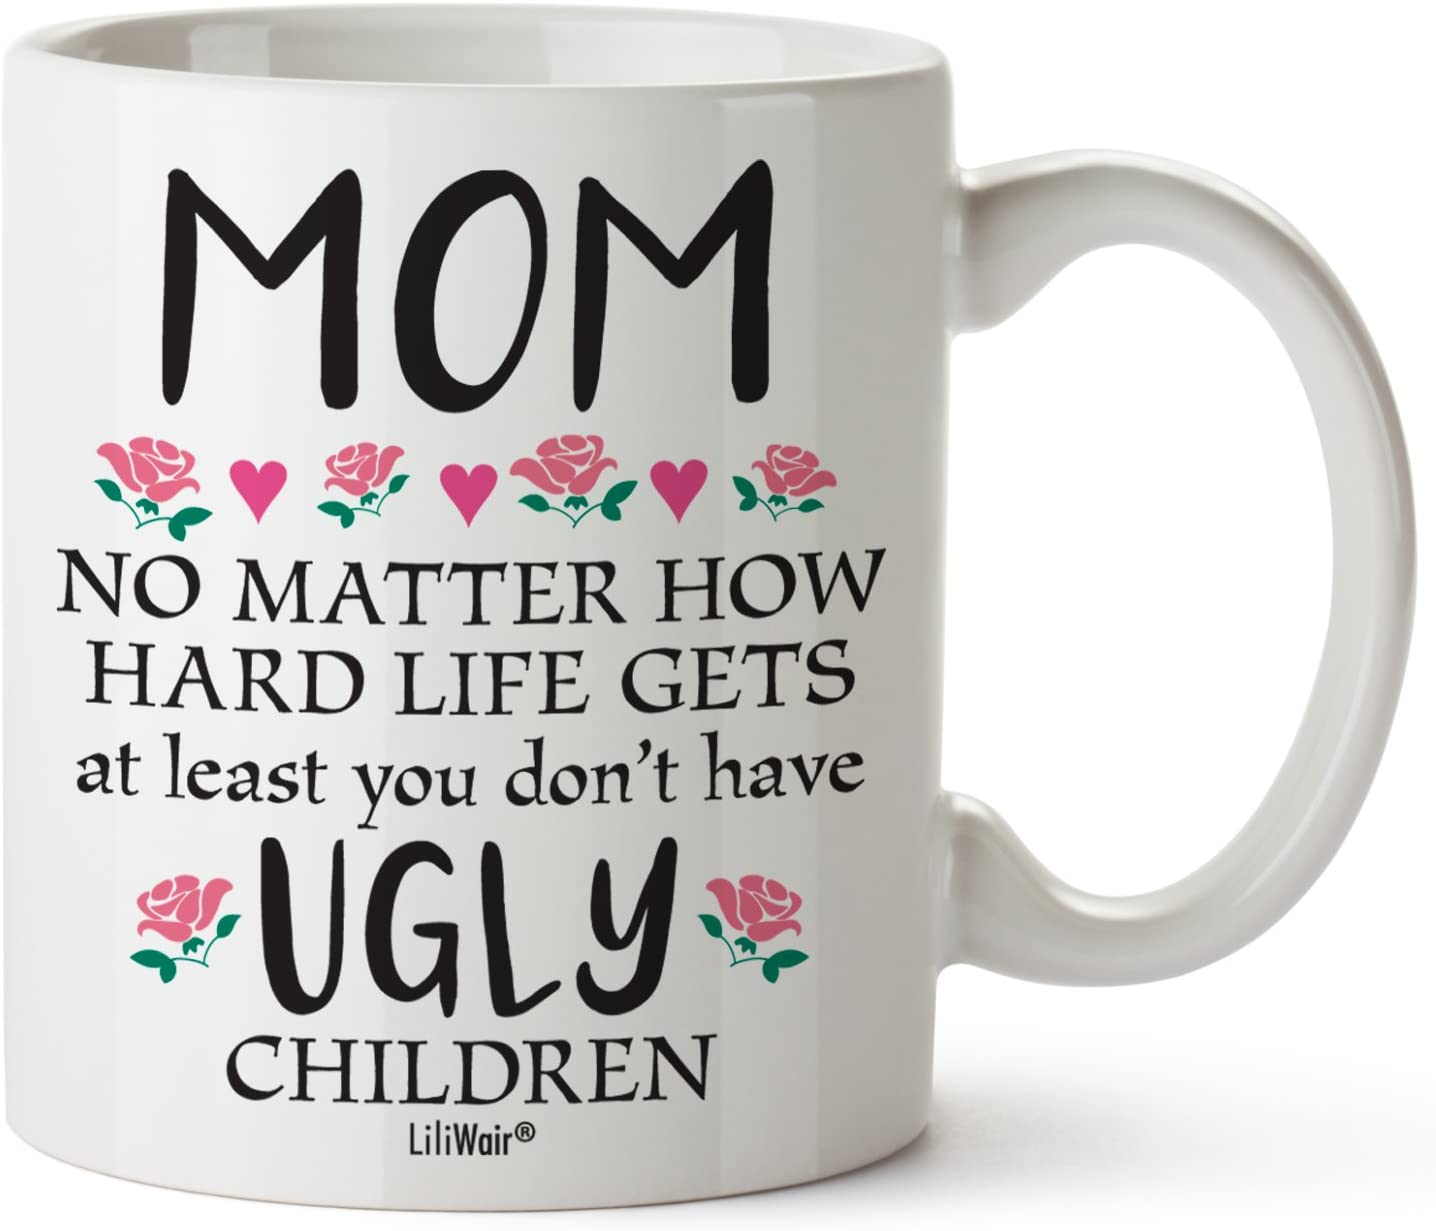 Gifts For Mom From Daughter Christmas Birthday Gift Ideas Moms Best Mother In Law New Coffee Mug Son Great Funny Presents Mugs Mommy Mothers Dad To Wife Cheap Happy Mom S Family Parents